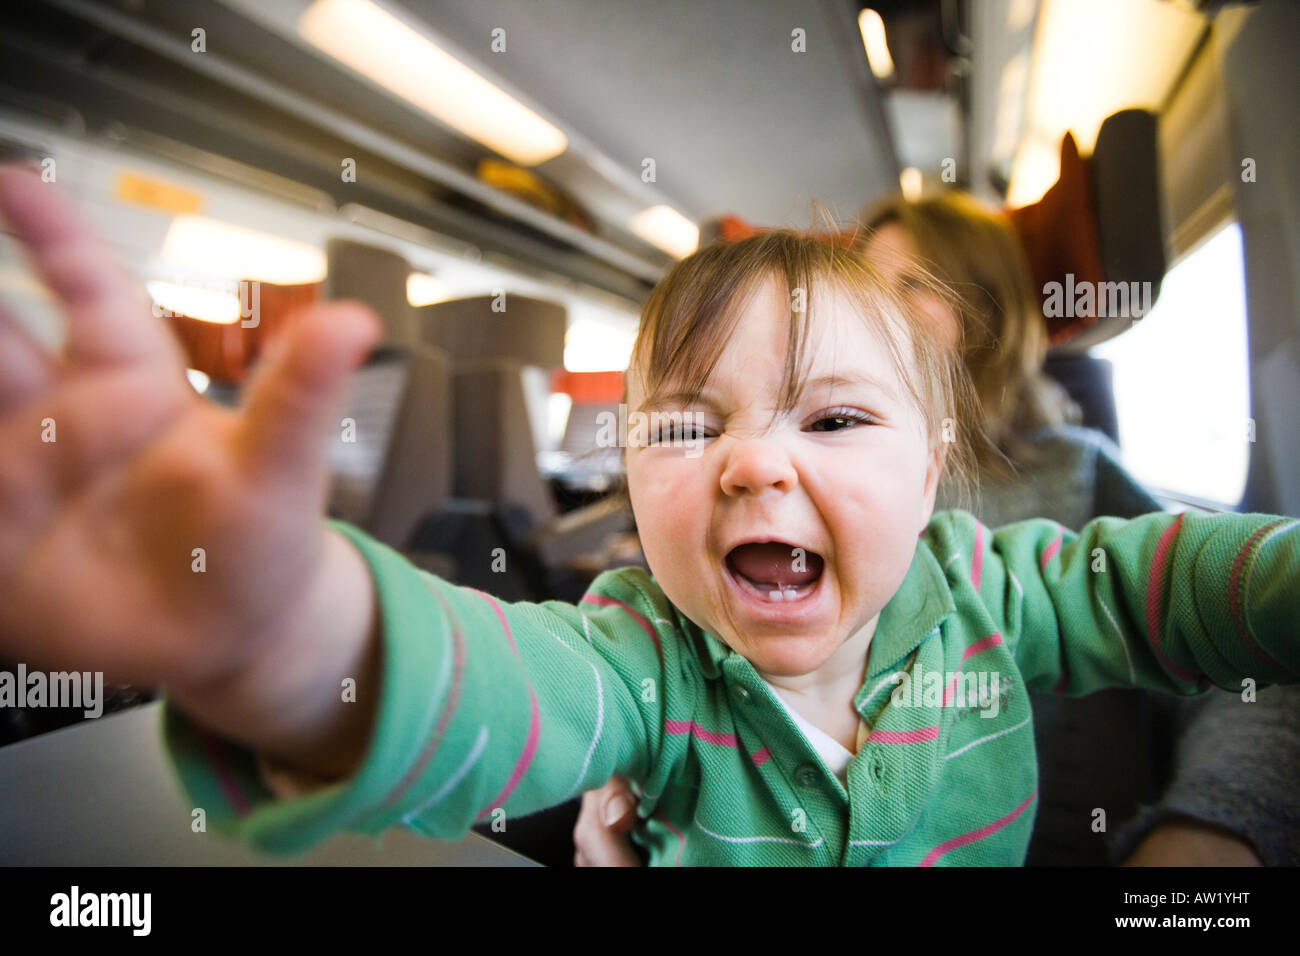 9 month old baby girl sitting on mother's lap and shouting on the eurostar train. Leisure Select class carriage Stock Photo